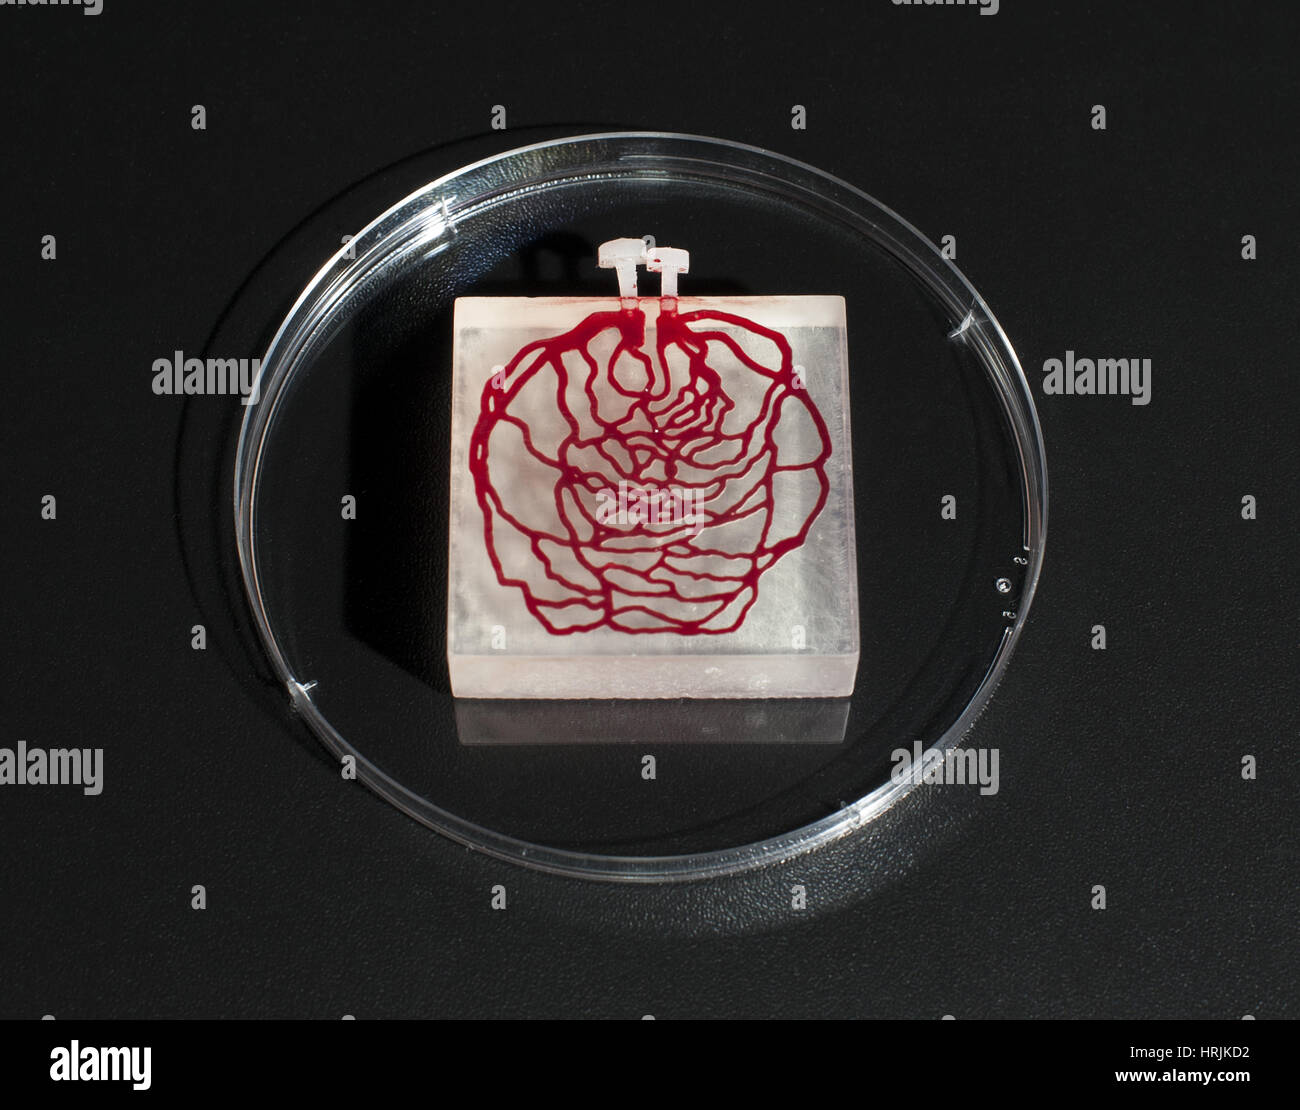 3-D Printed Tissue Simulation, 2015 - Stock Image